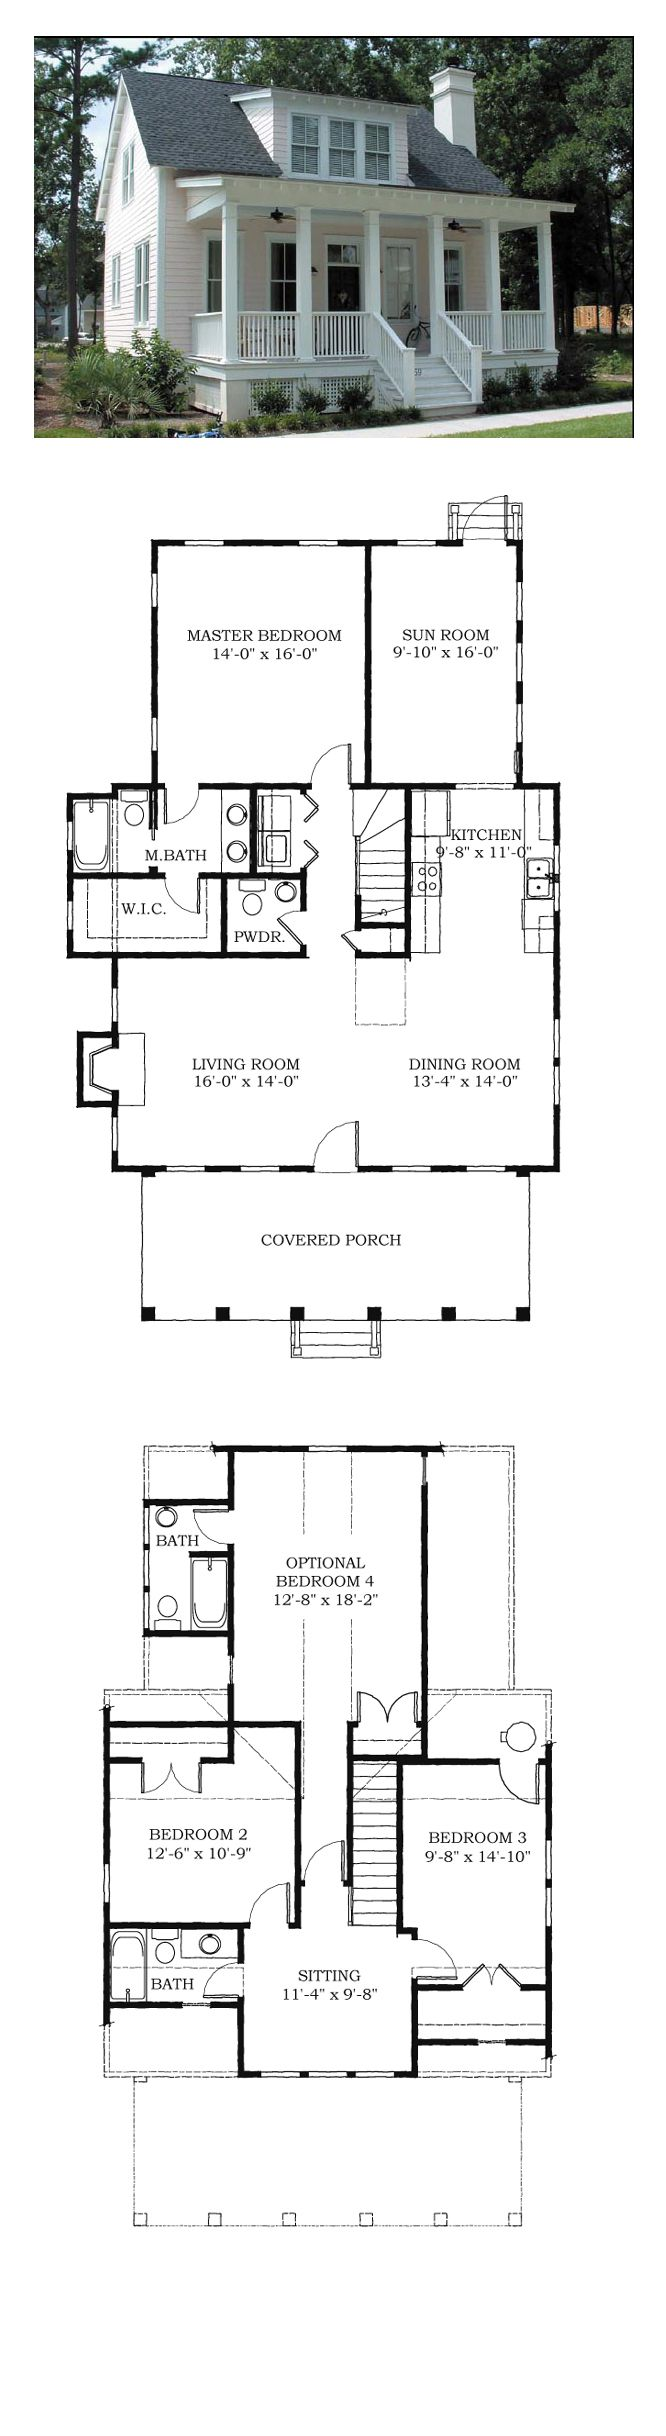 COOL House Plan ID  chp 38703 Total Living Area 1783 sq Best 25 Tiny house plans ideas on Pinterest Small home